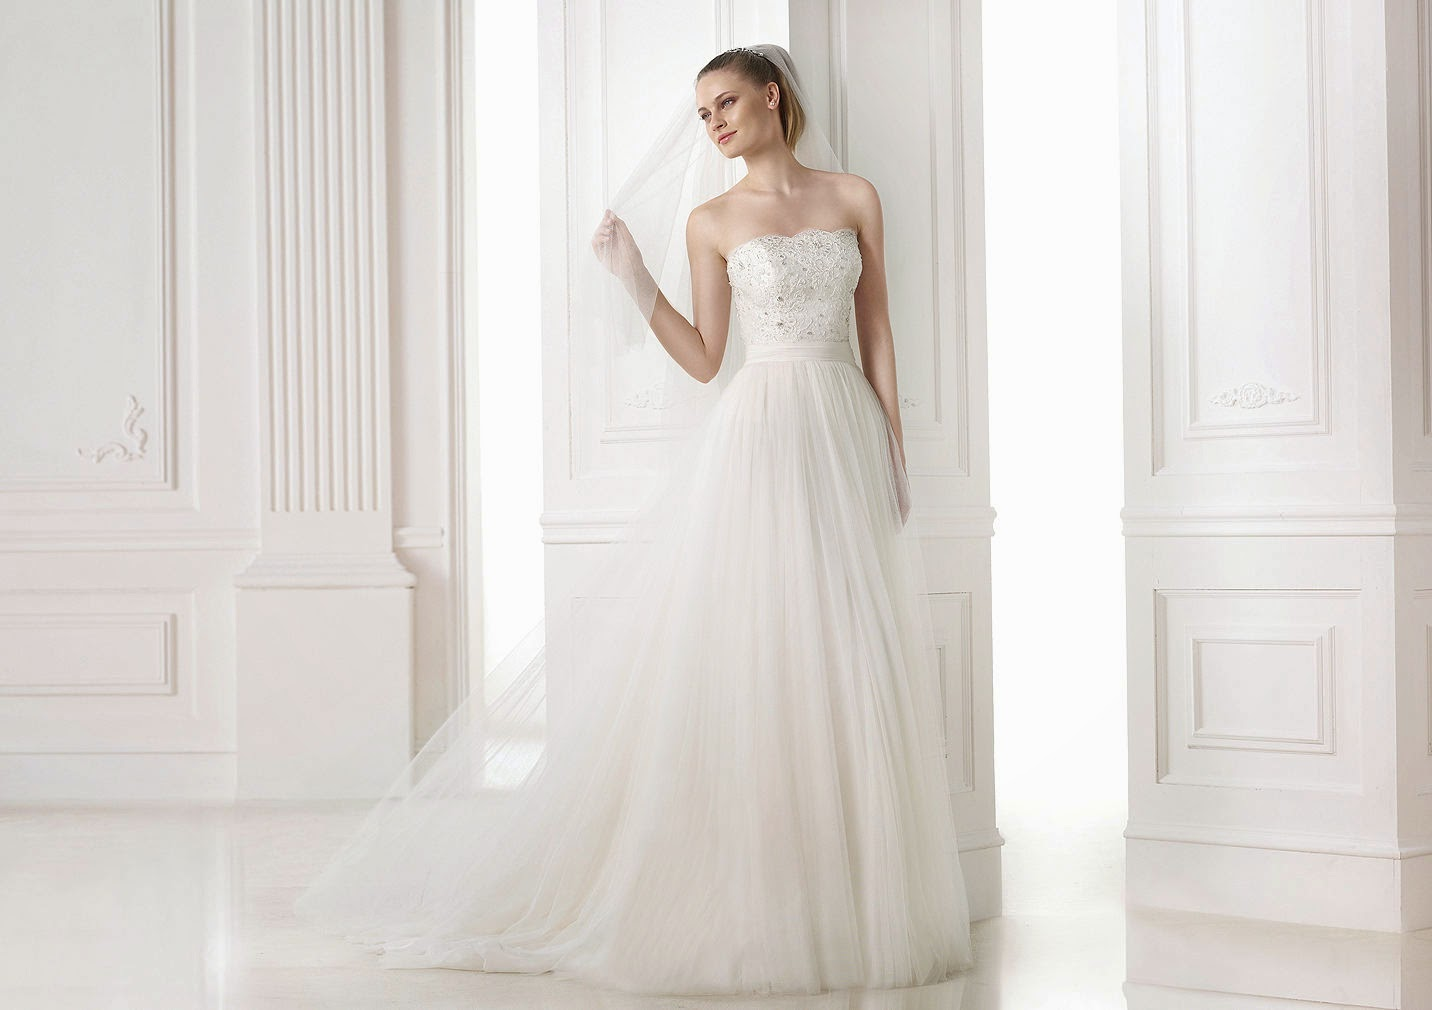 Design wedding dress Provonias the Classical and Romantic